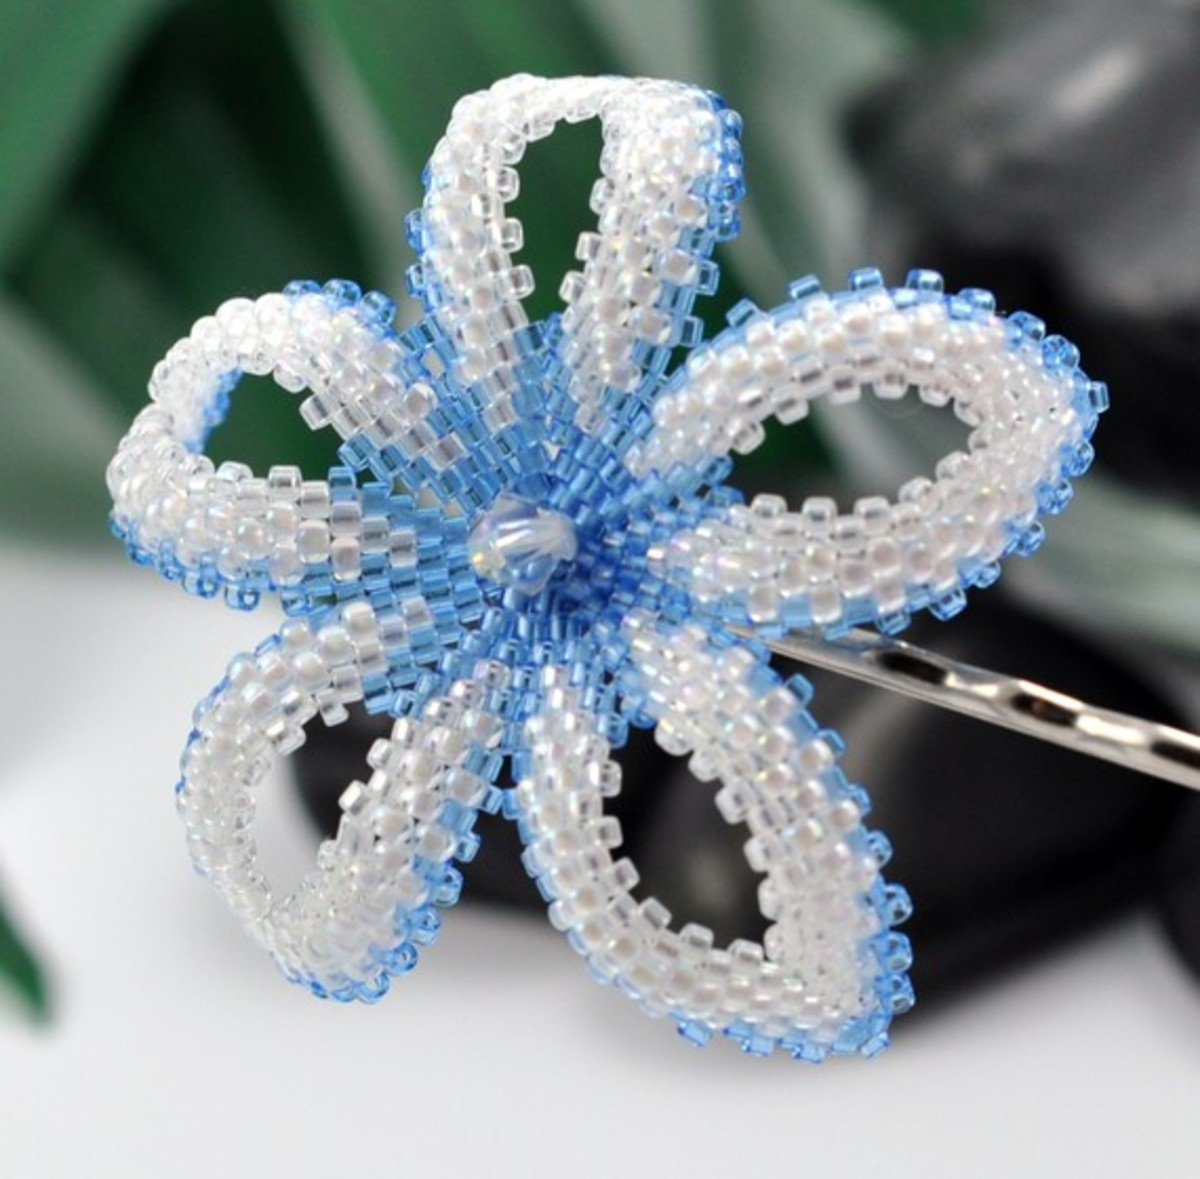 Bead-Woven Flowers: Jewelry Projects, Parts, and Patterns